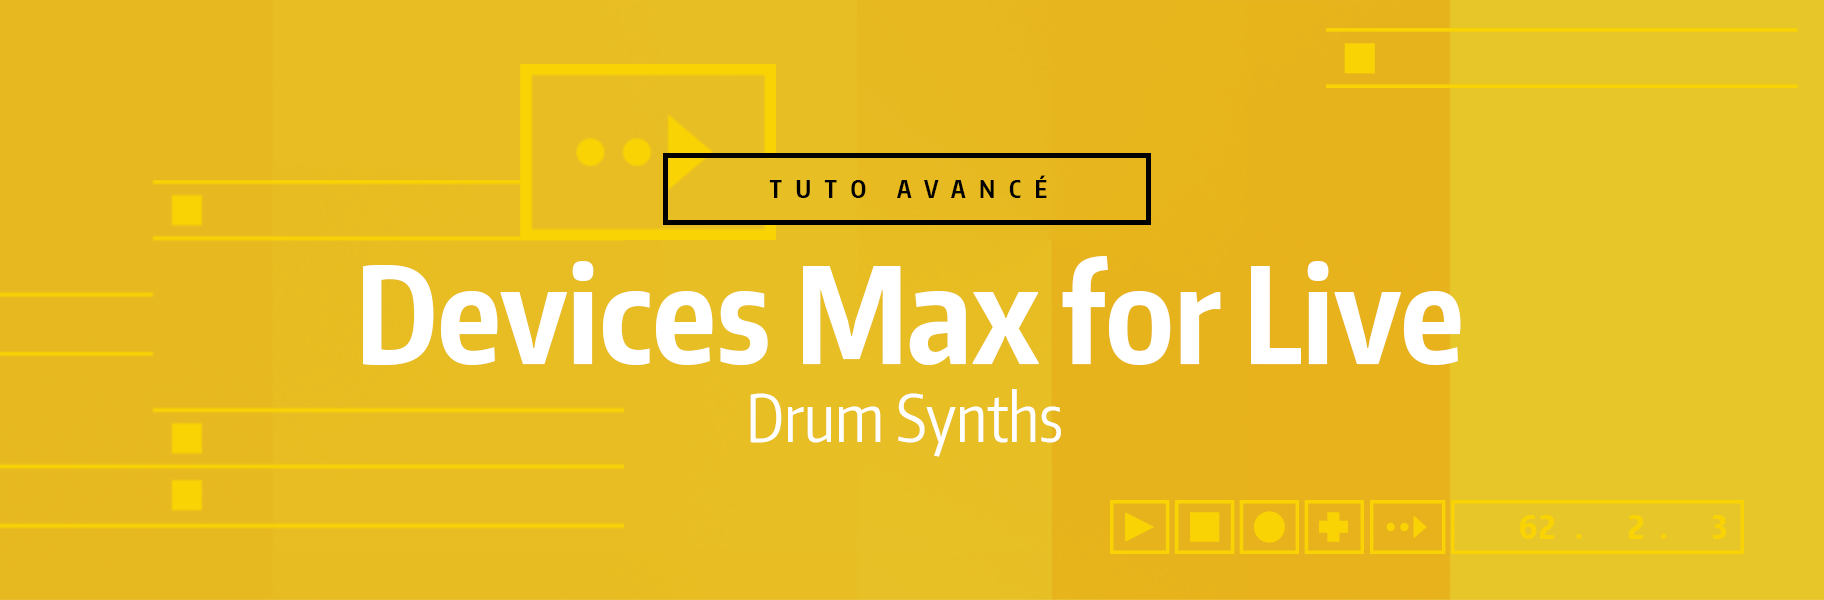 Tutoriel Ableton Live #47 - Devices Max for Live - Drum Synths